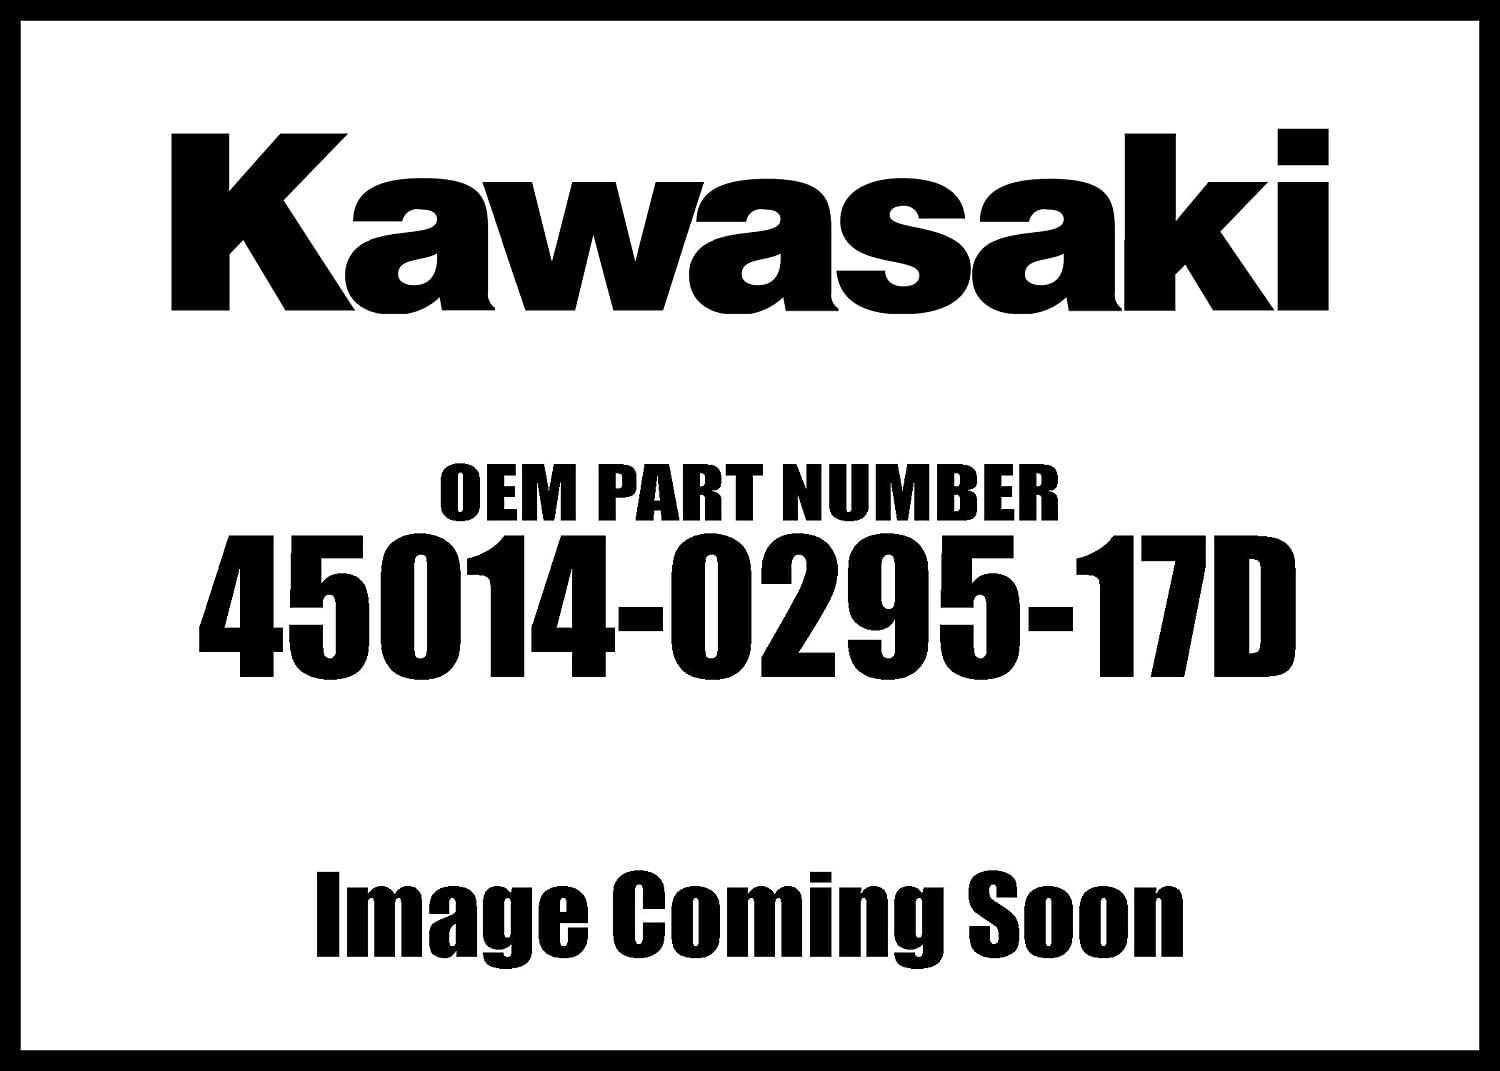 Gifts Kawasaki 2010 Our shop OFFers the best service Kx450f Shockabsorber Black 45014-0295-17D Oem New